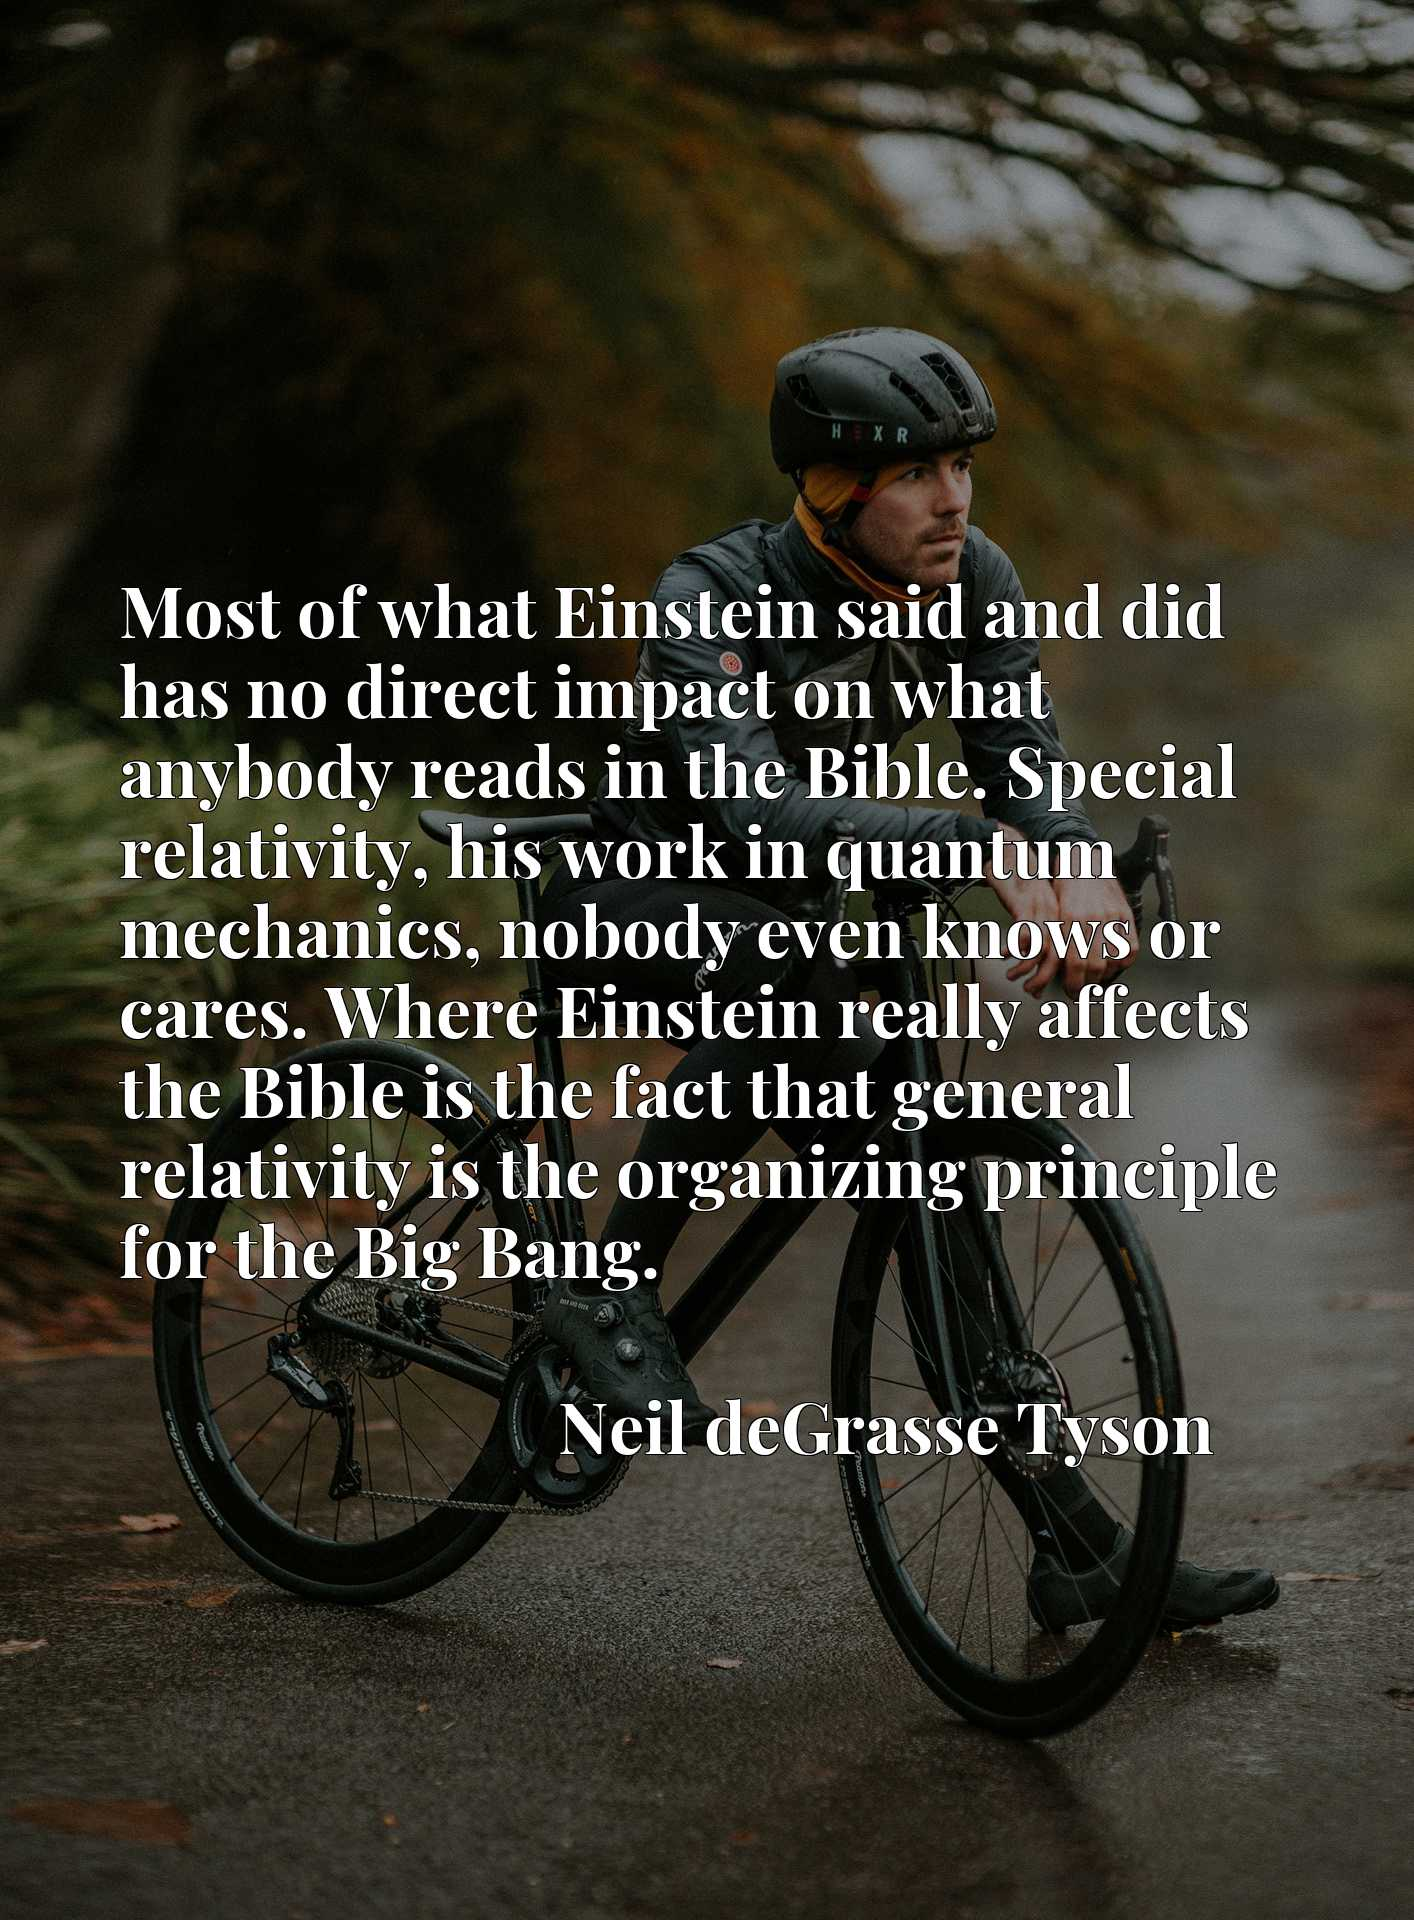 Most of what Einstein said and did has no direct impact on what anybody reads in the Bible. Special relativity, his work in quantum mechanics, nobody even knows or cares. Where Einstein really affects the Bible is the fact that general relativity is the organizing principle for the Big Bang.